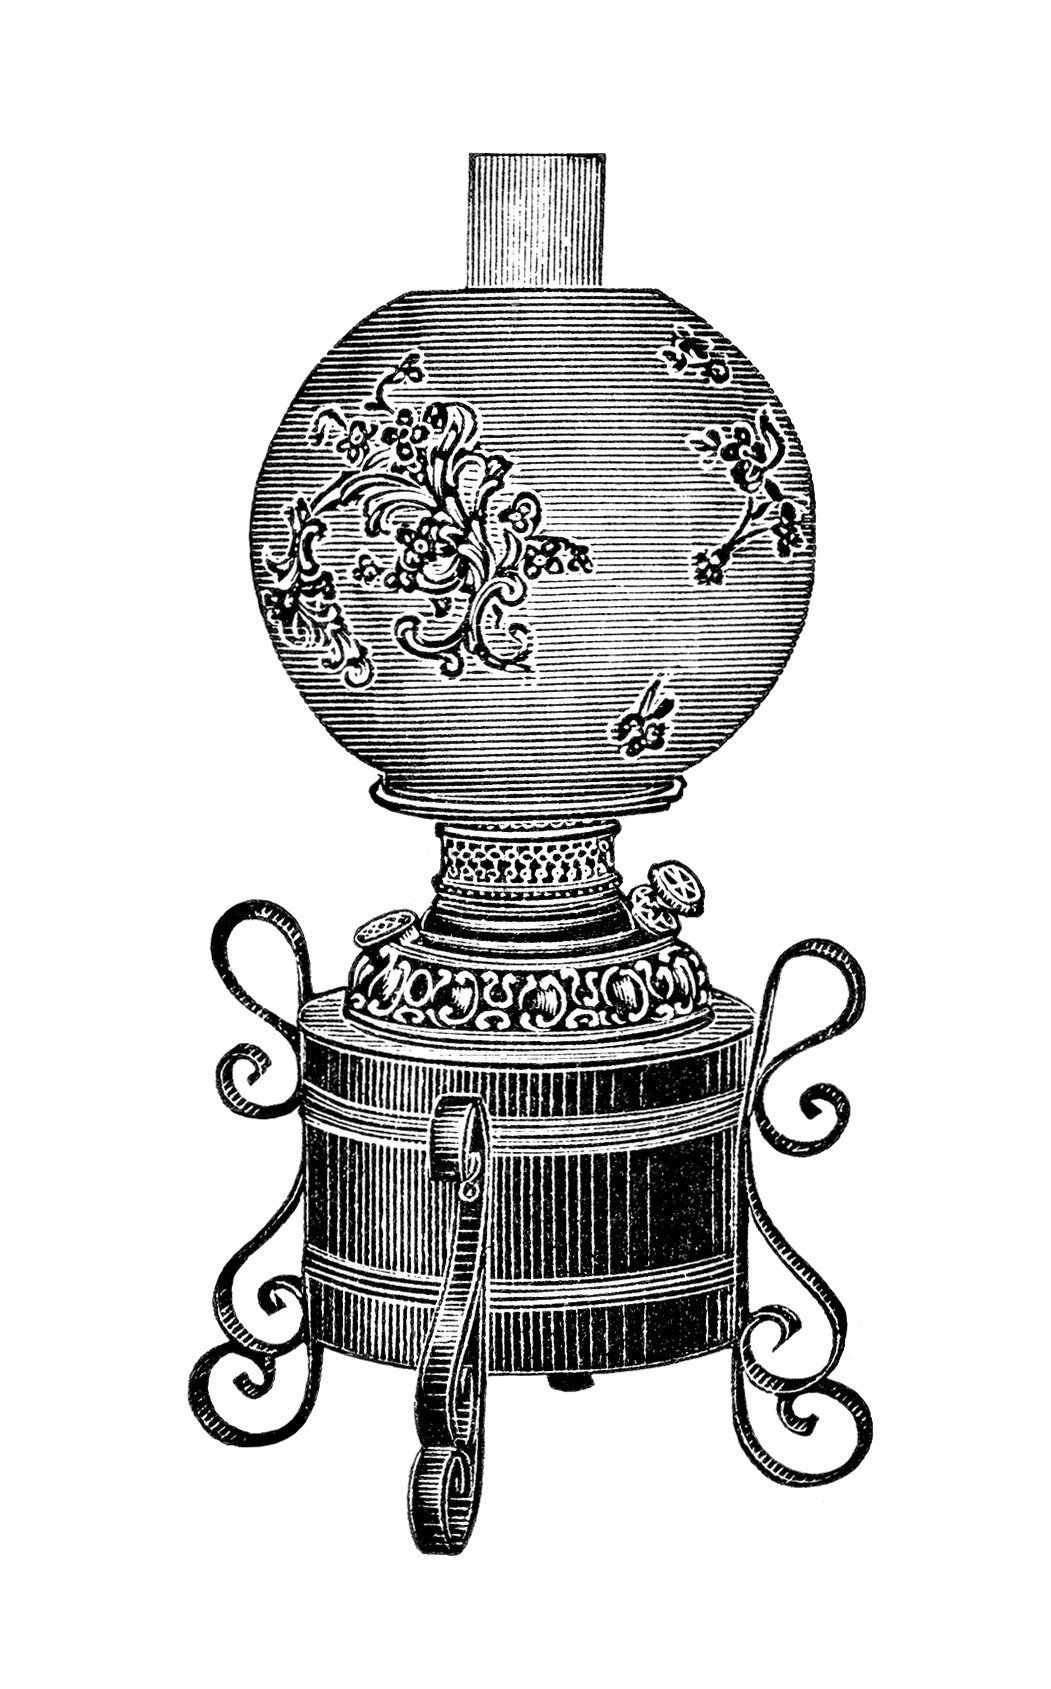 iron table lamp image, vintage lamp clipart, black and white.